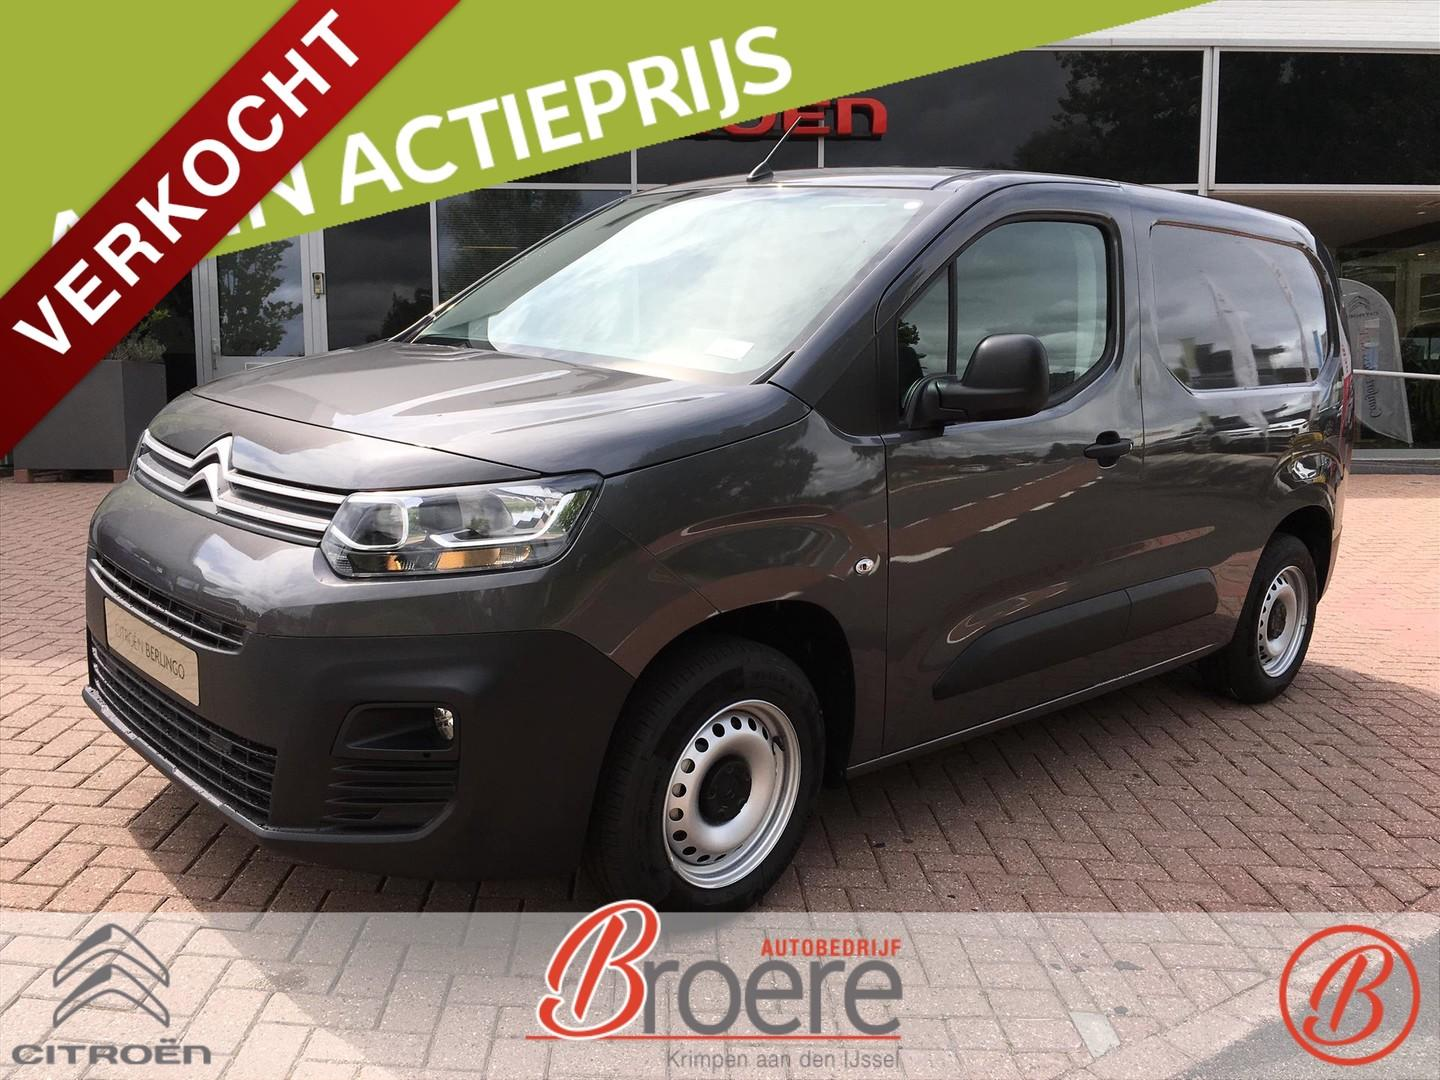 Citroën Berlingo 1.6 bluehdi 100pk s&s club 6.1